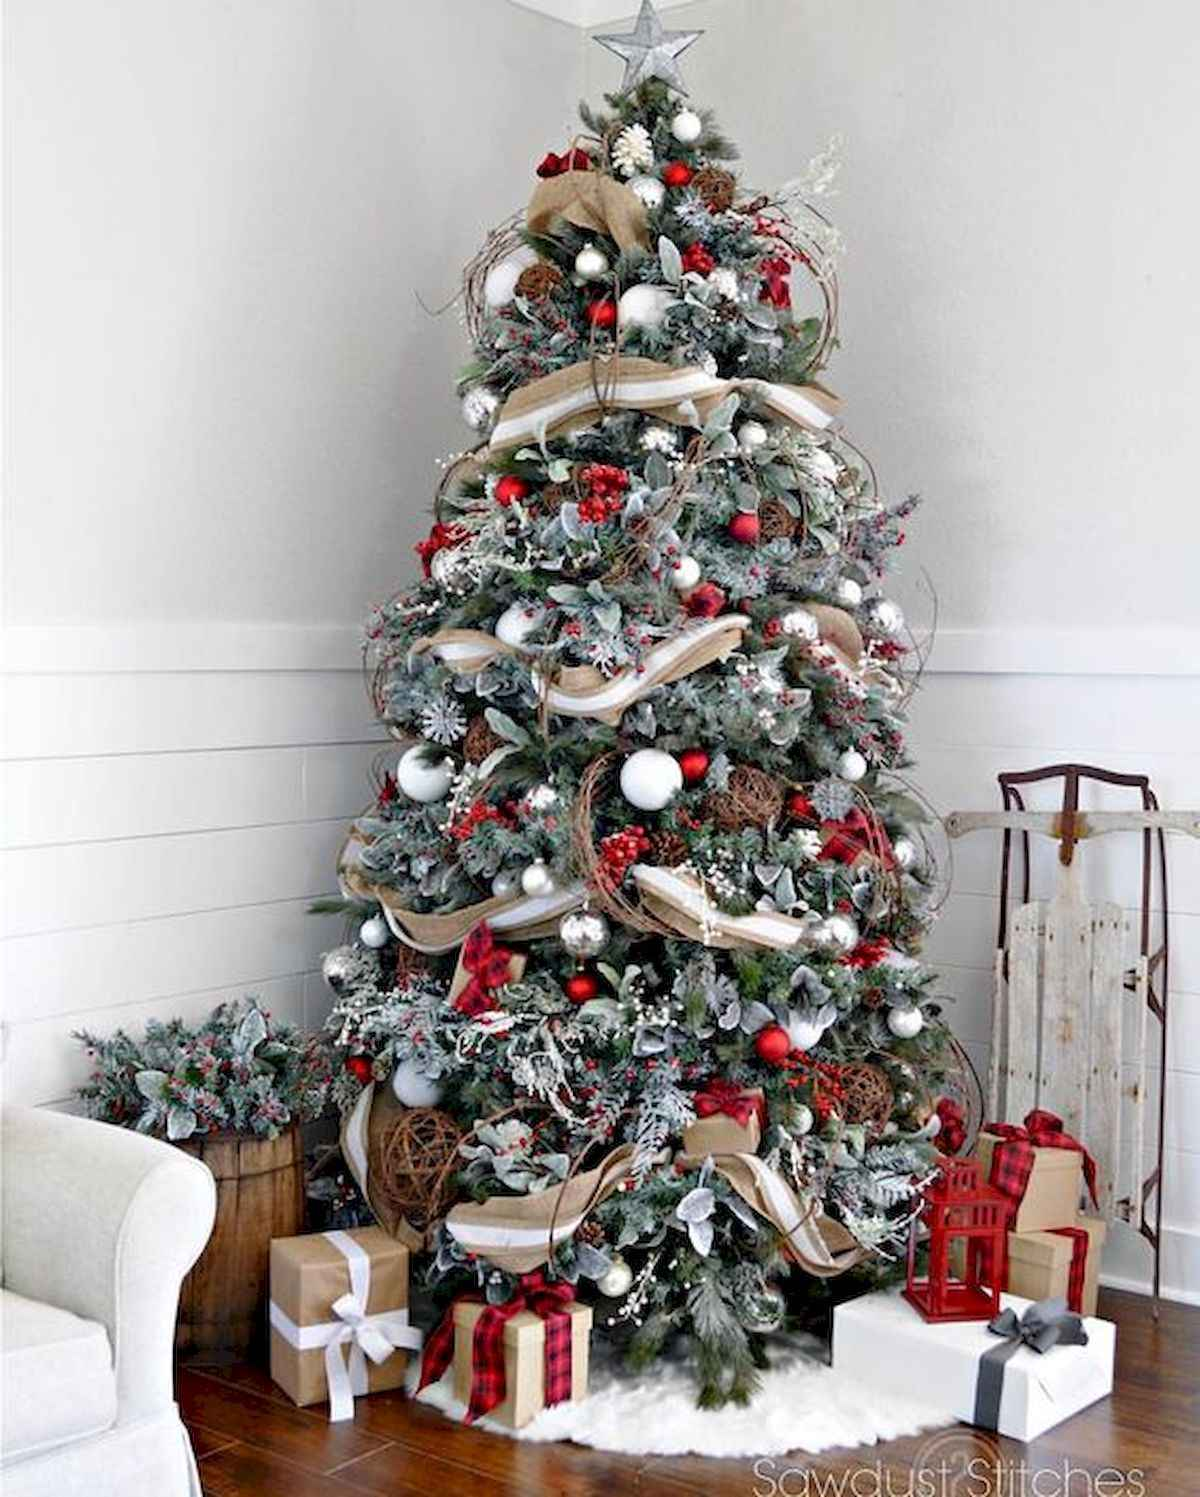 60 awesome christmas tree decorations ideas (23)